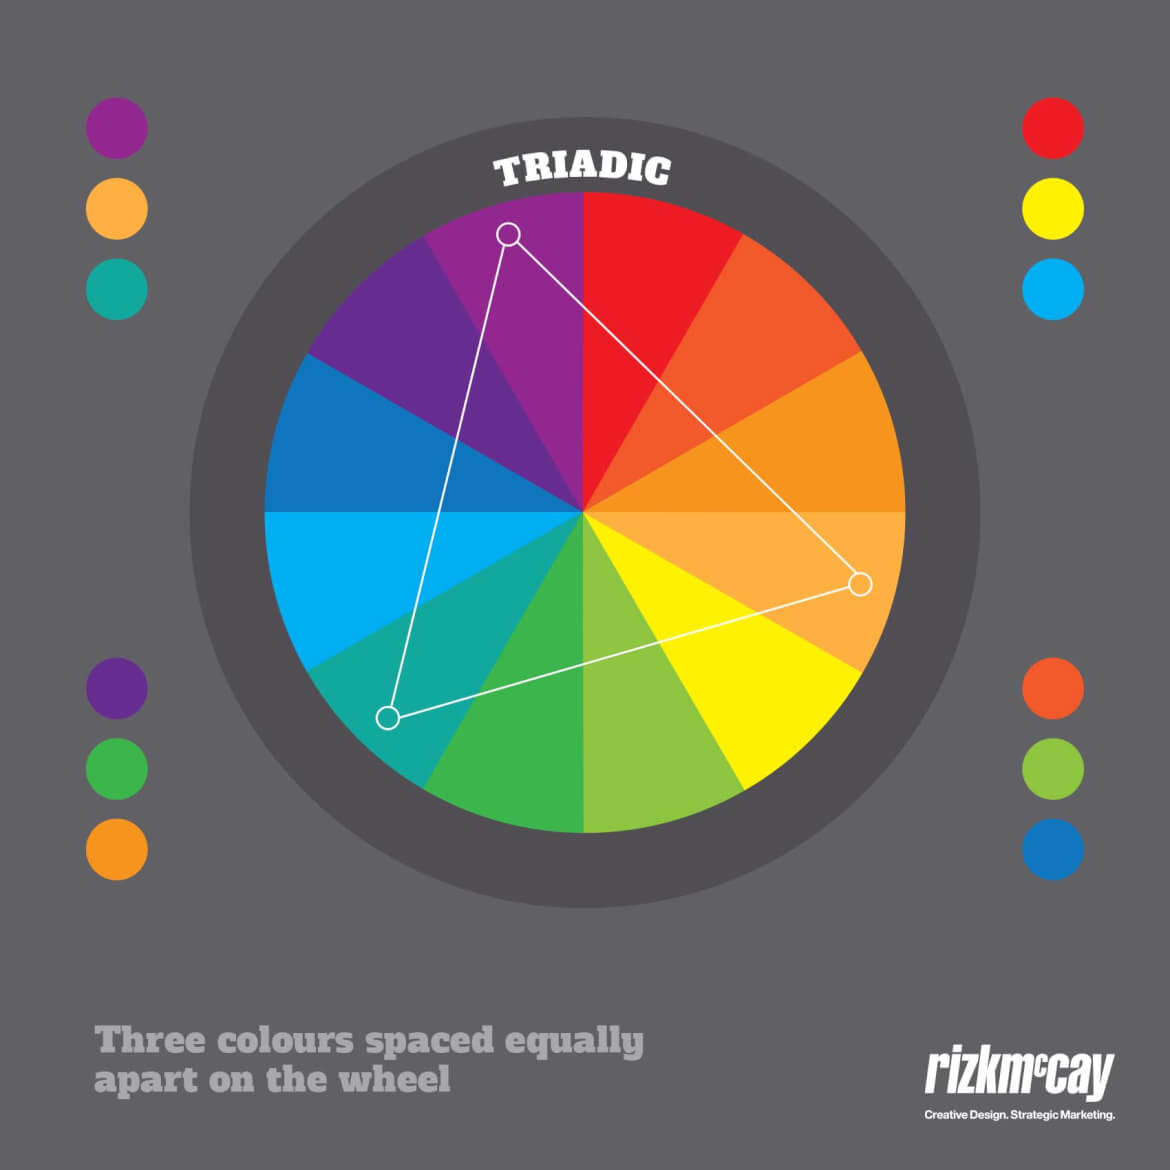 Triadic colour wheel - colours that are equally spaced on the wheel